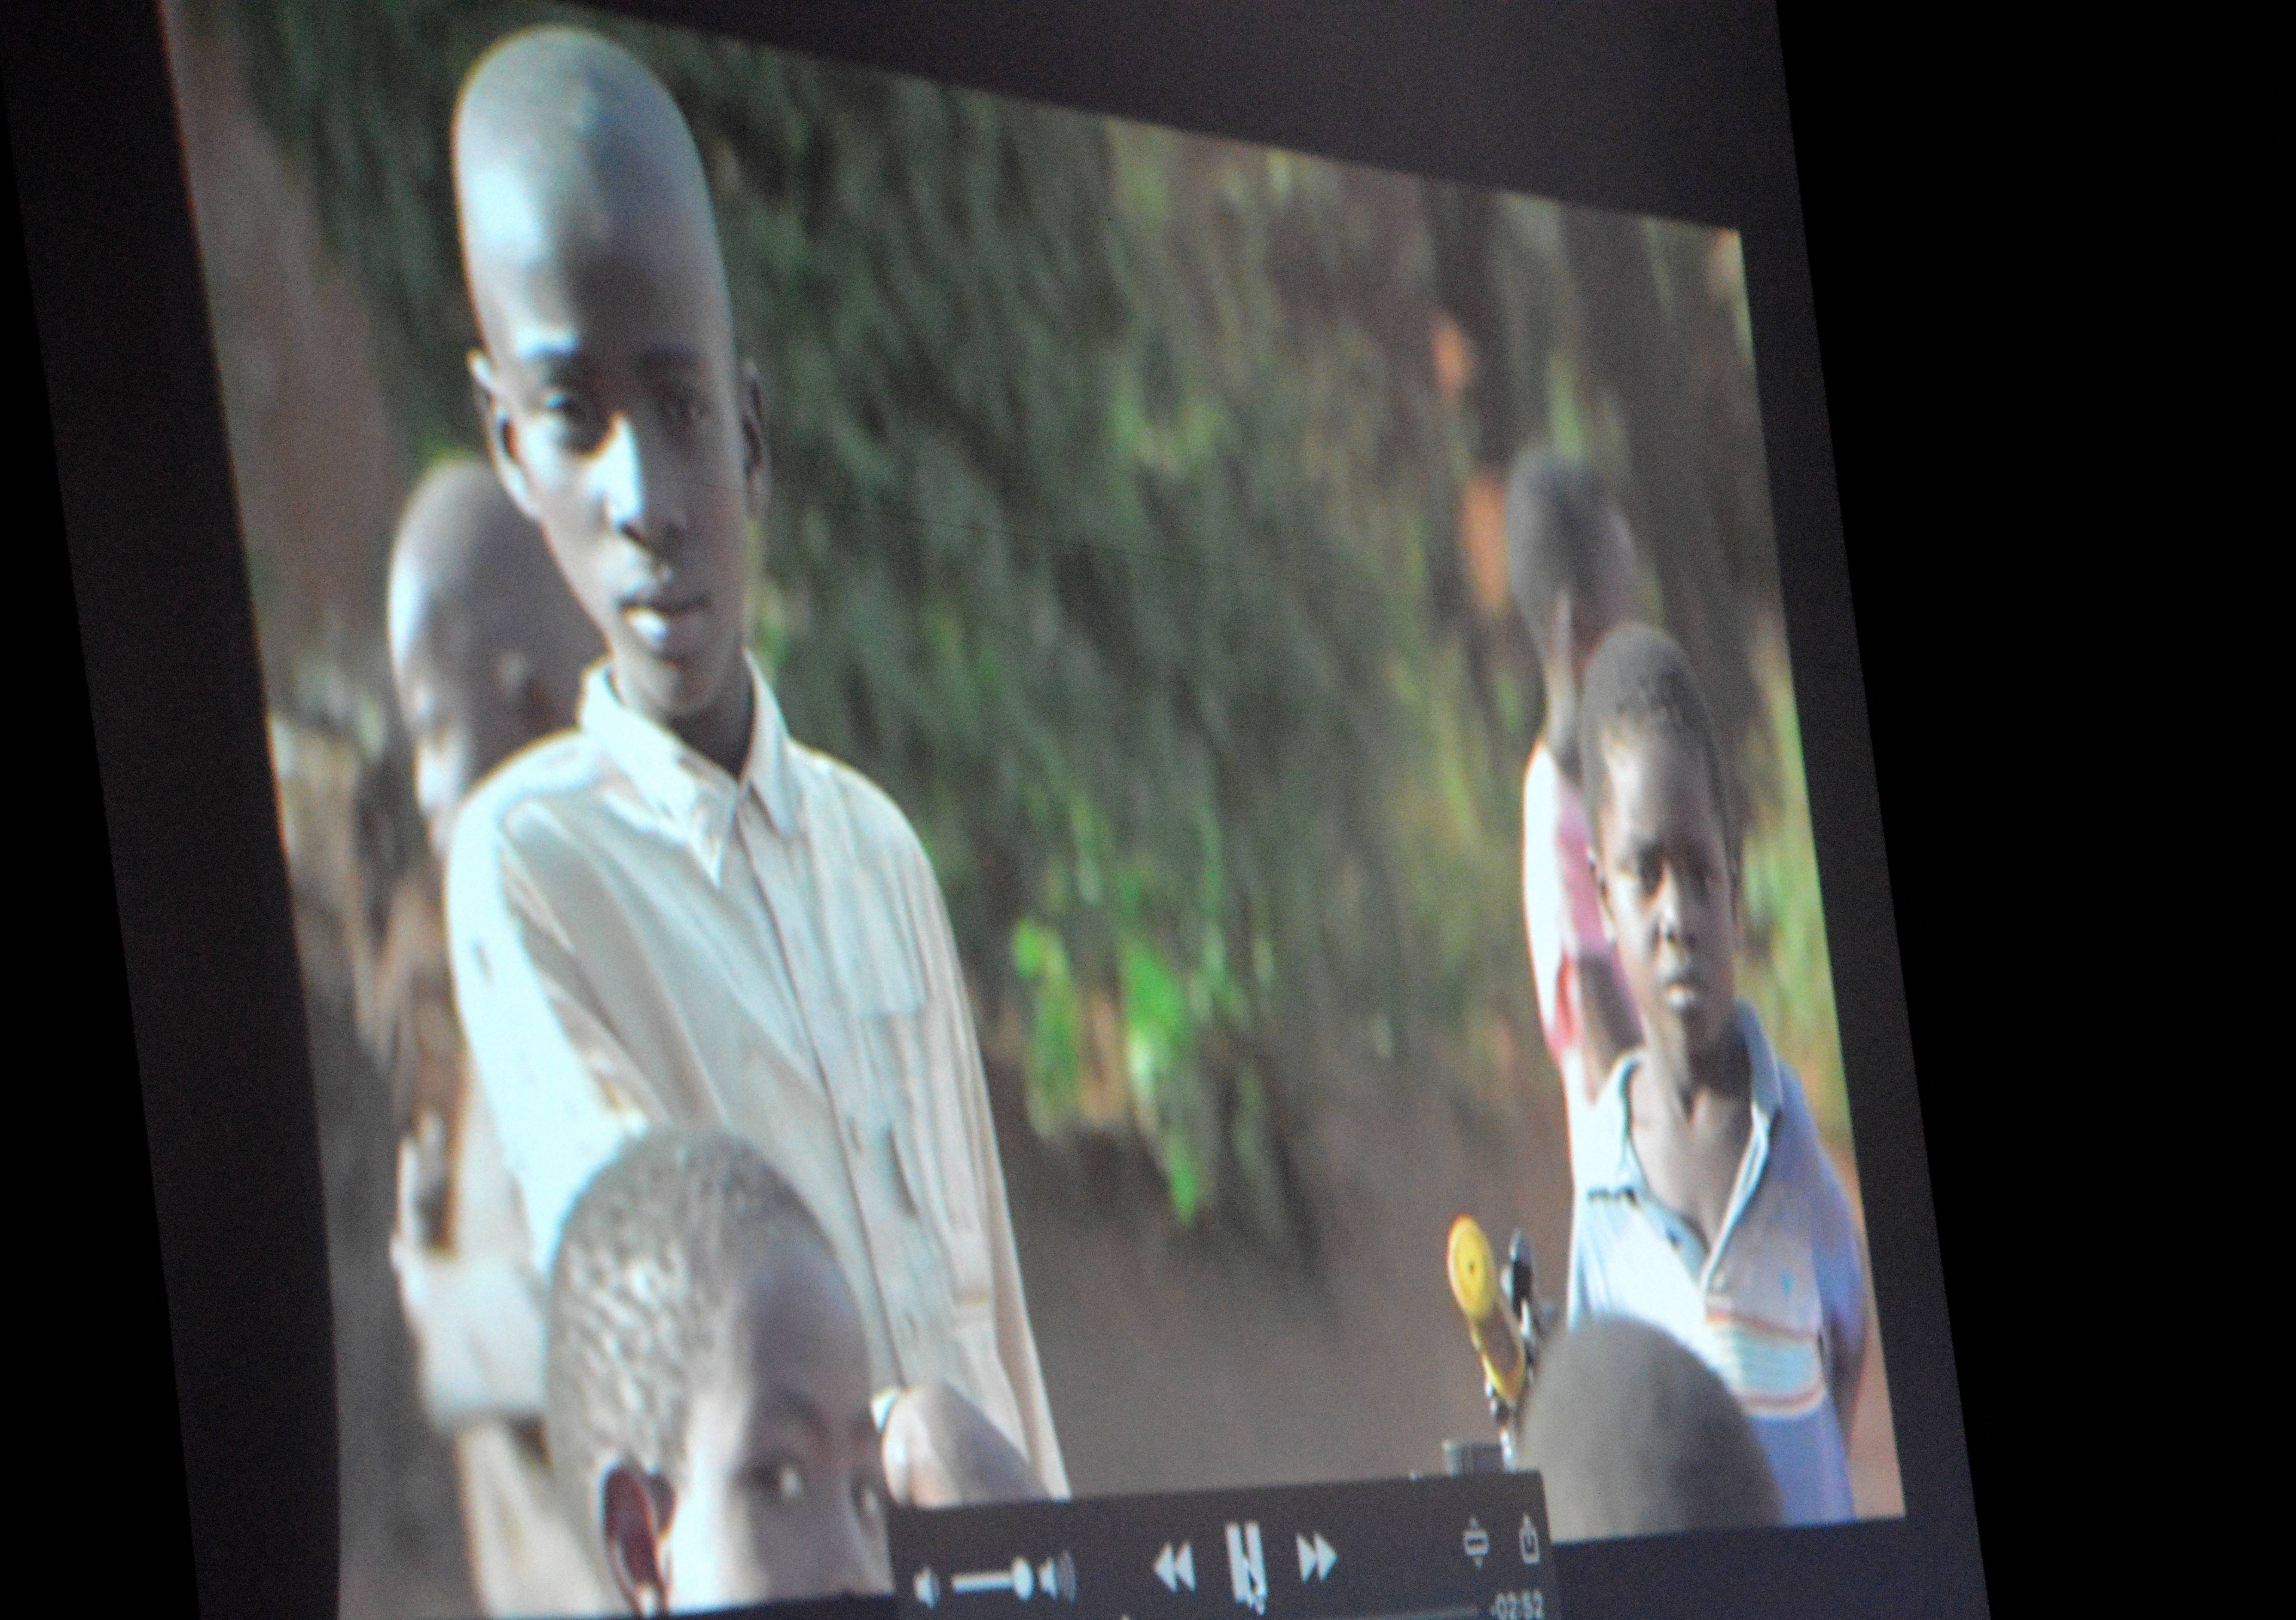 f667f4a50d95d88fe5ce_Rotary_-_video_from_Africa.JPG